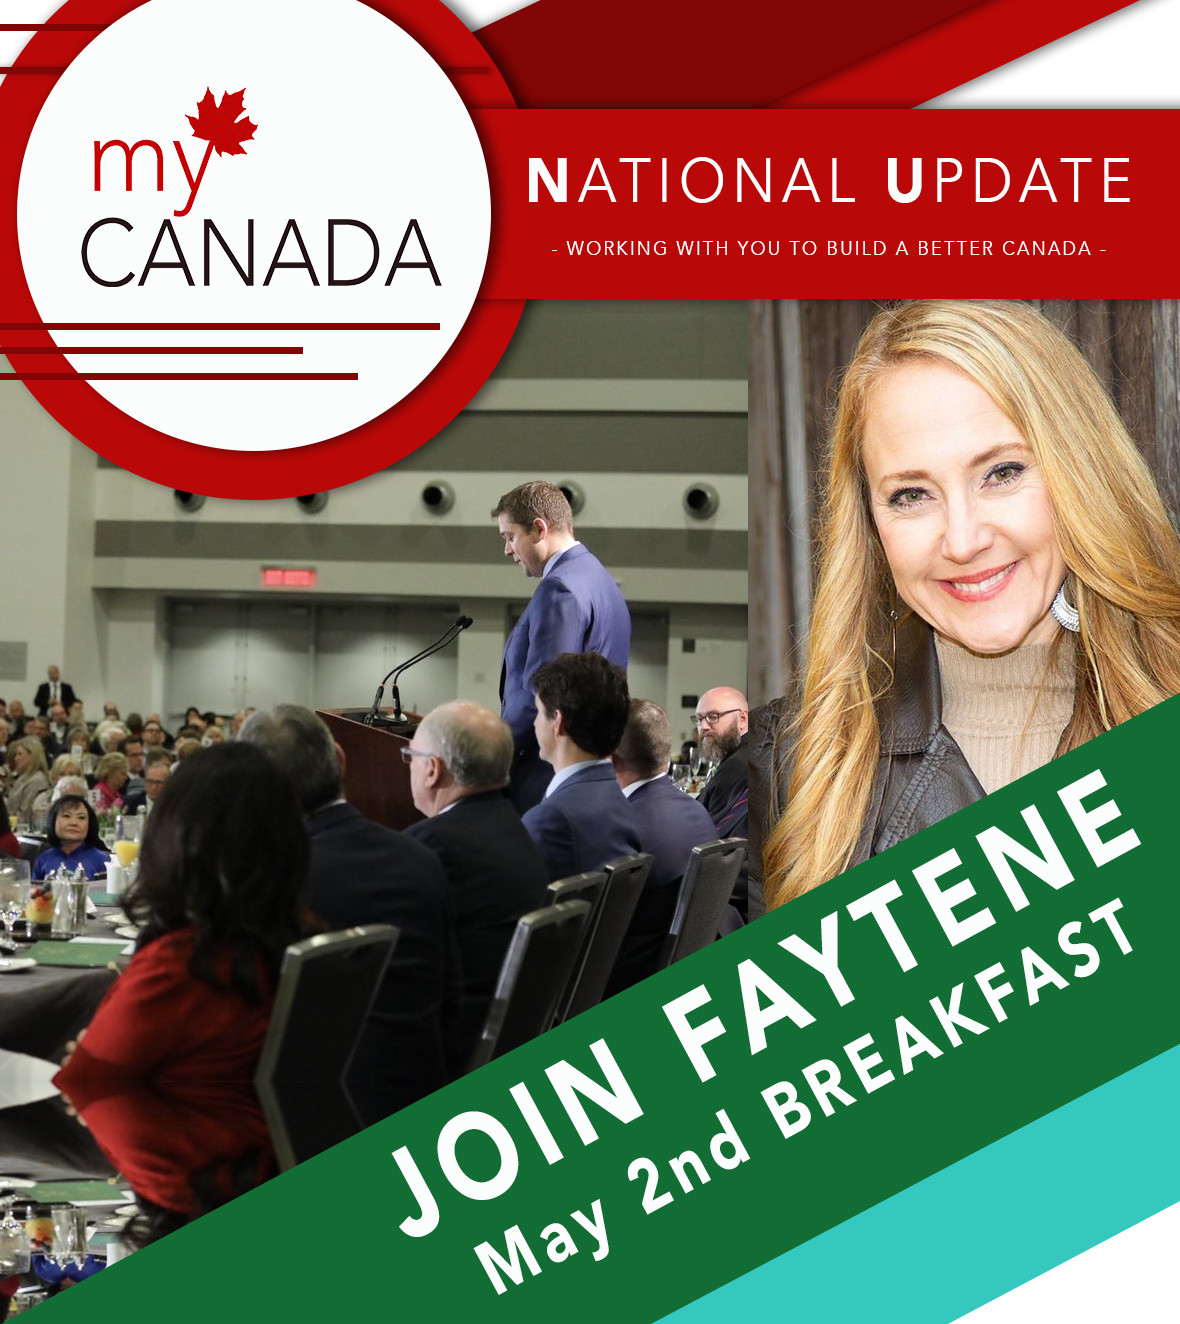 National Prayer Breakfast Ticket (Breakfast Only) - SOLD OUT